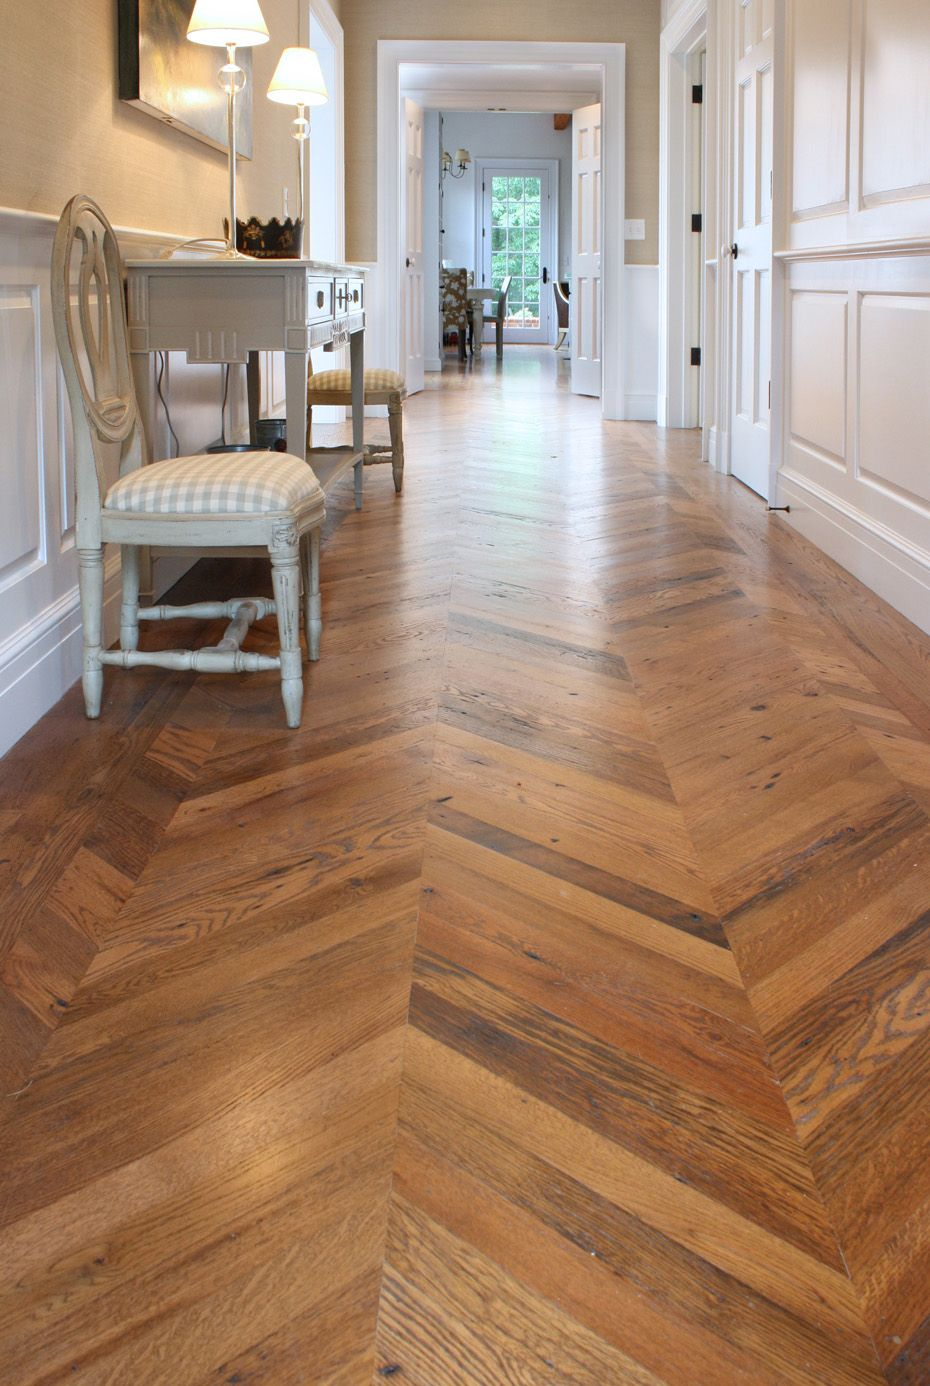 Flooring Services in Melbourne